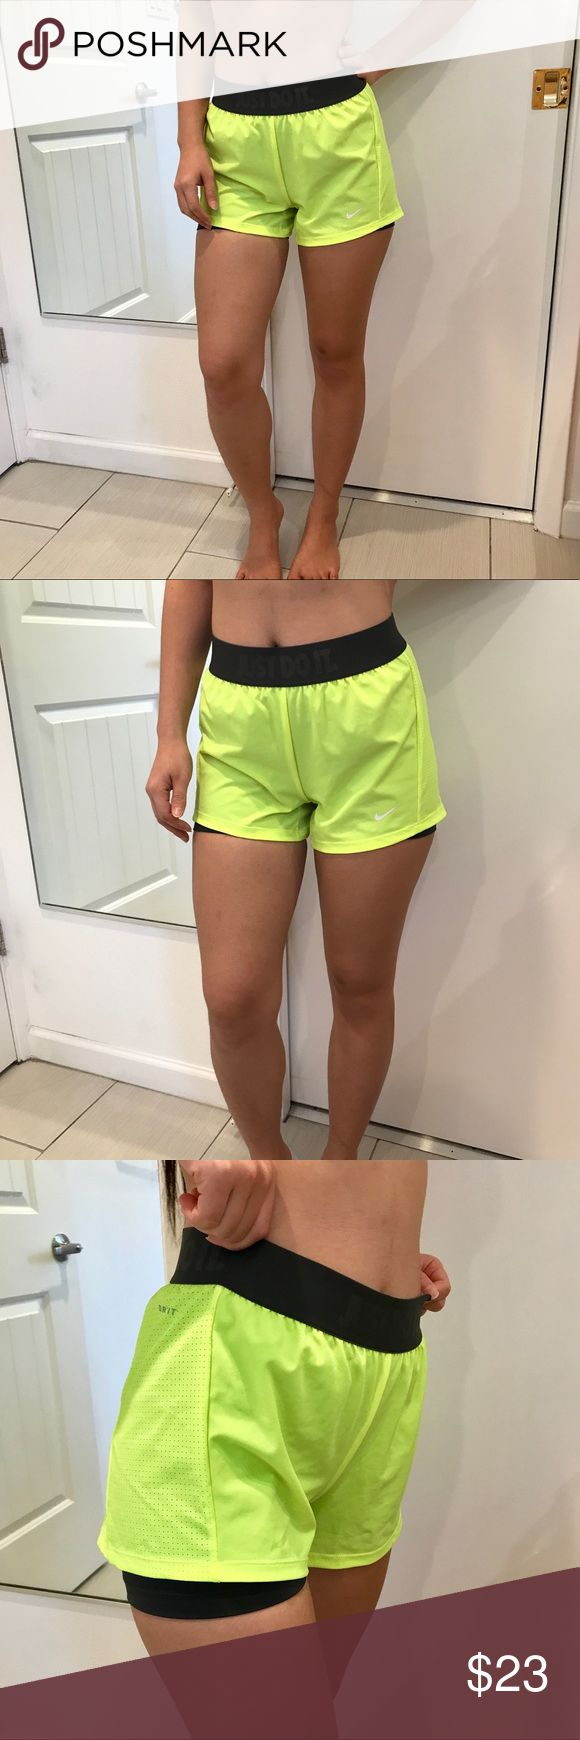 Nike neon green athletic shorts Nike neon green athletic shorts. New without tag. Size XS. Has a very nice fitting! The color is somewhat really bright if you see in person but I know some of you are fans of neon so ... why not rock with it? 👏🙌🏻 Nike Shorts